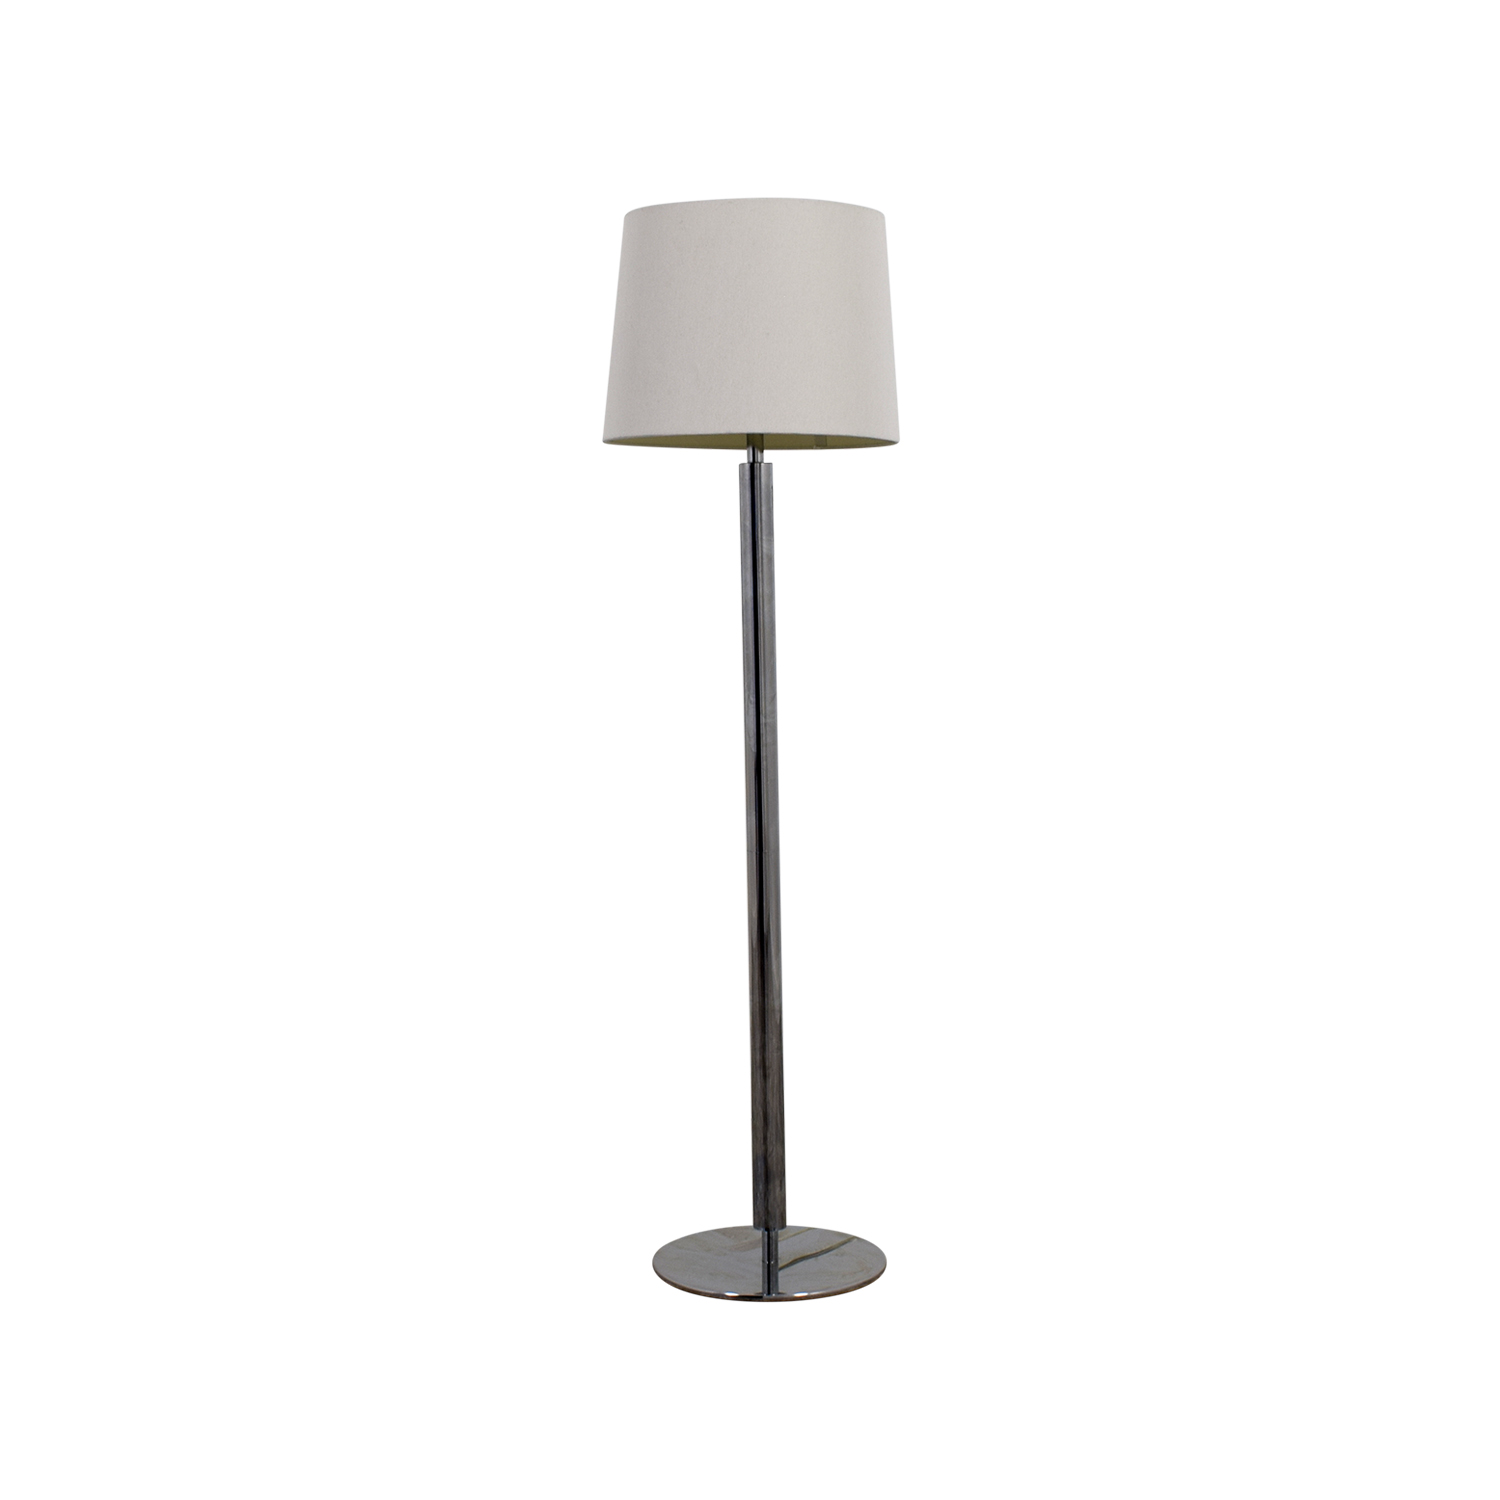 shop Design Craft Design Craft Standing Lamp online